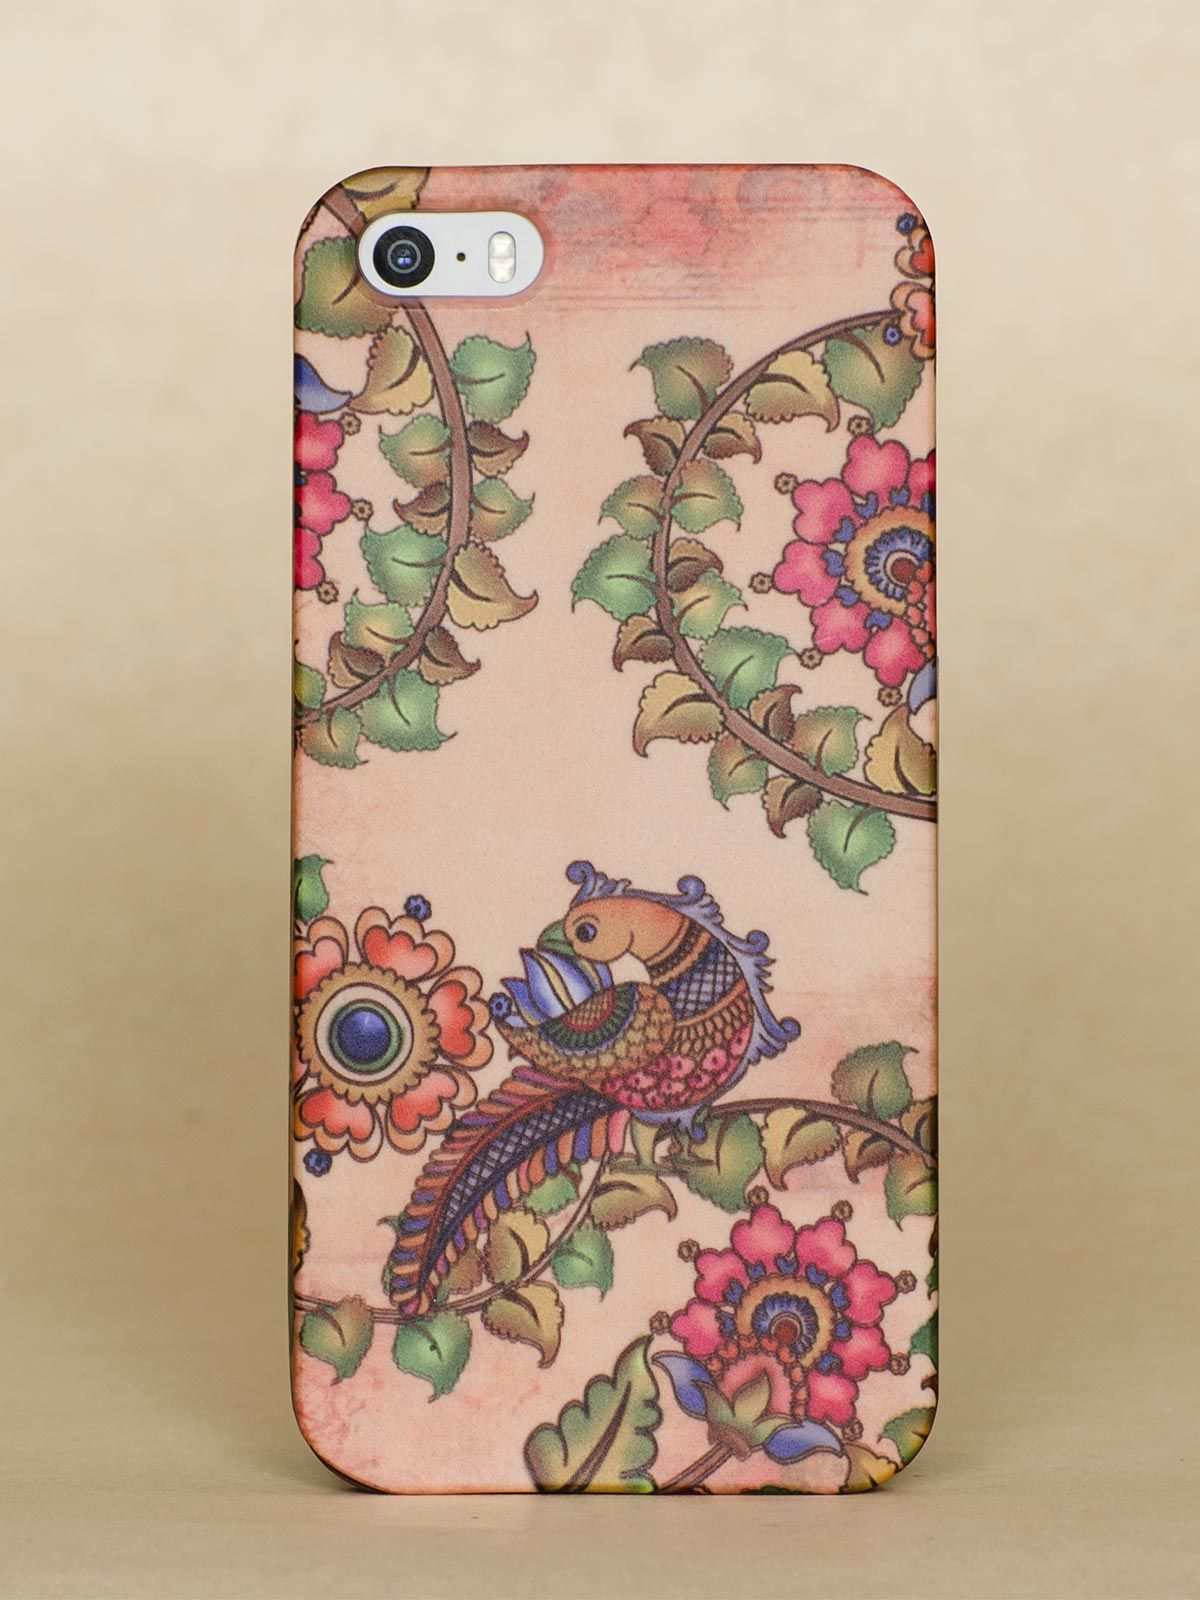 Rust Peacock Iphone 5S case